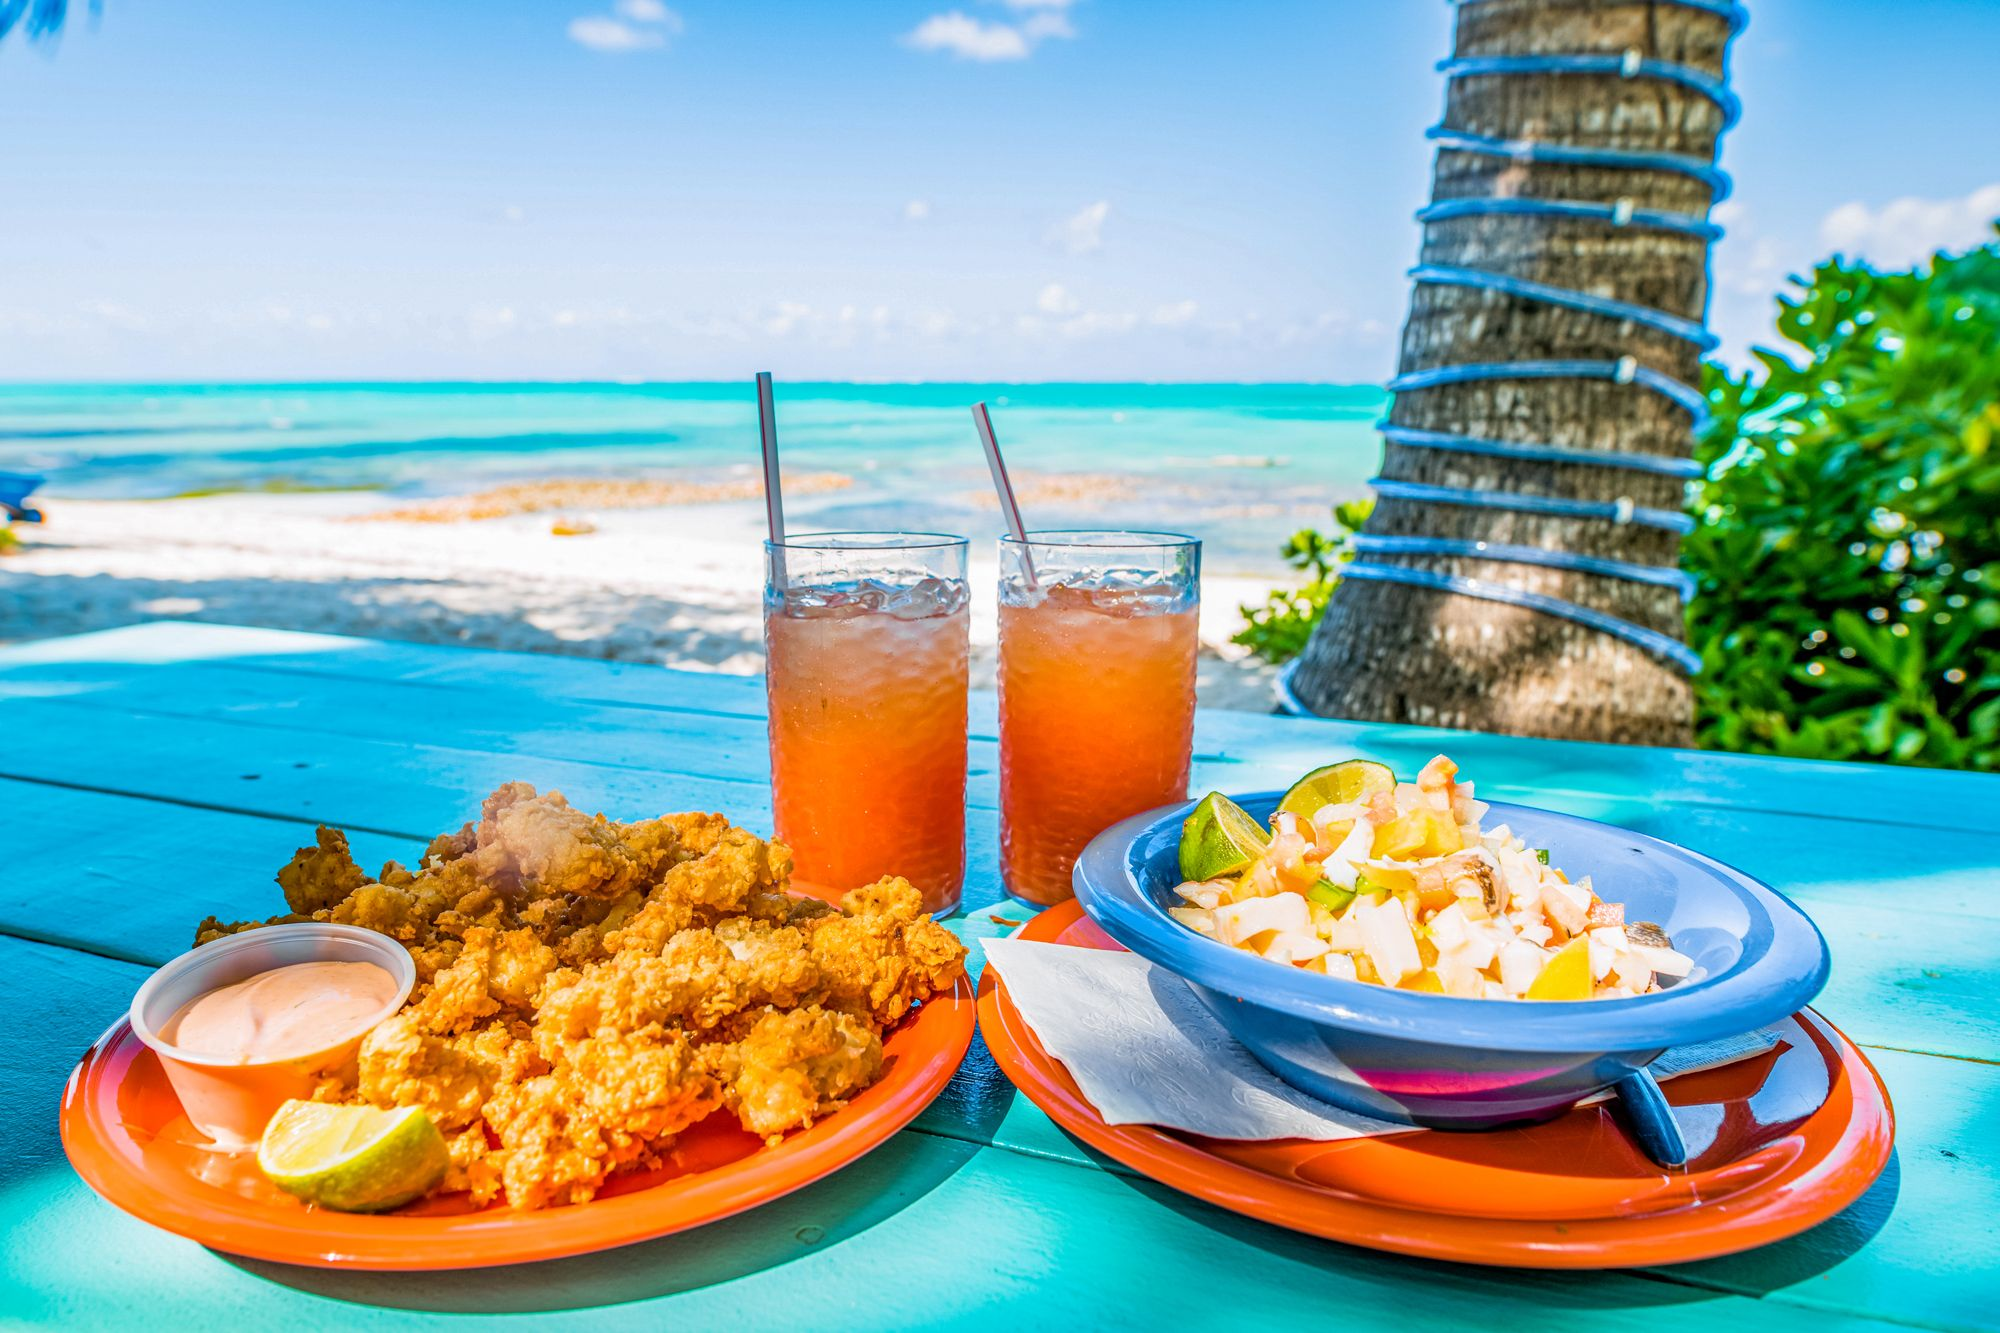 Conch fritters conch salad punch Bahamas